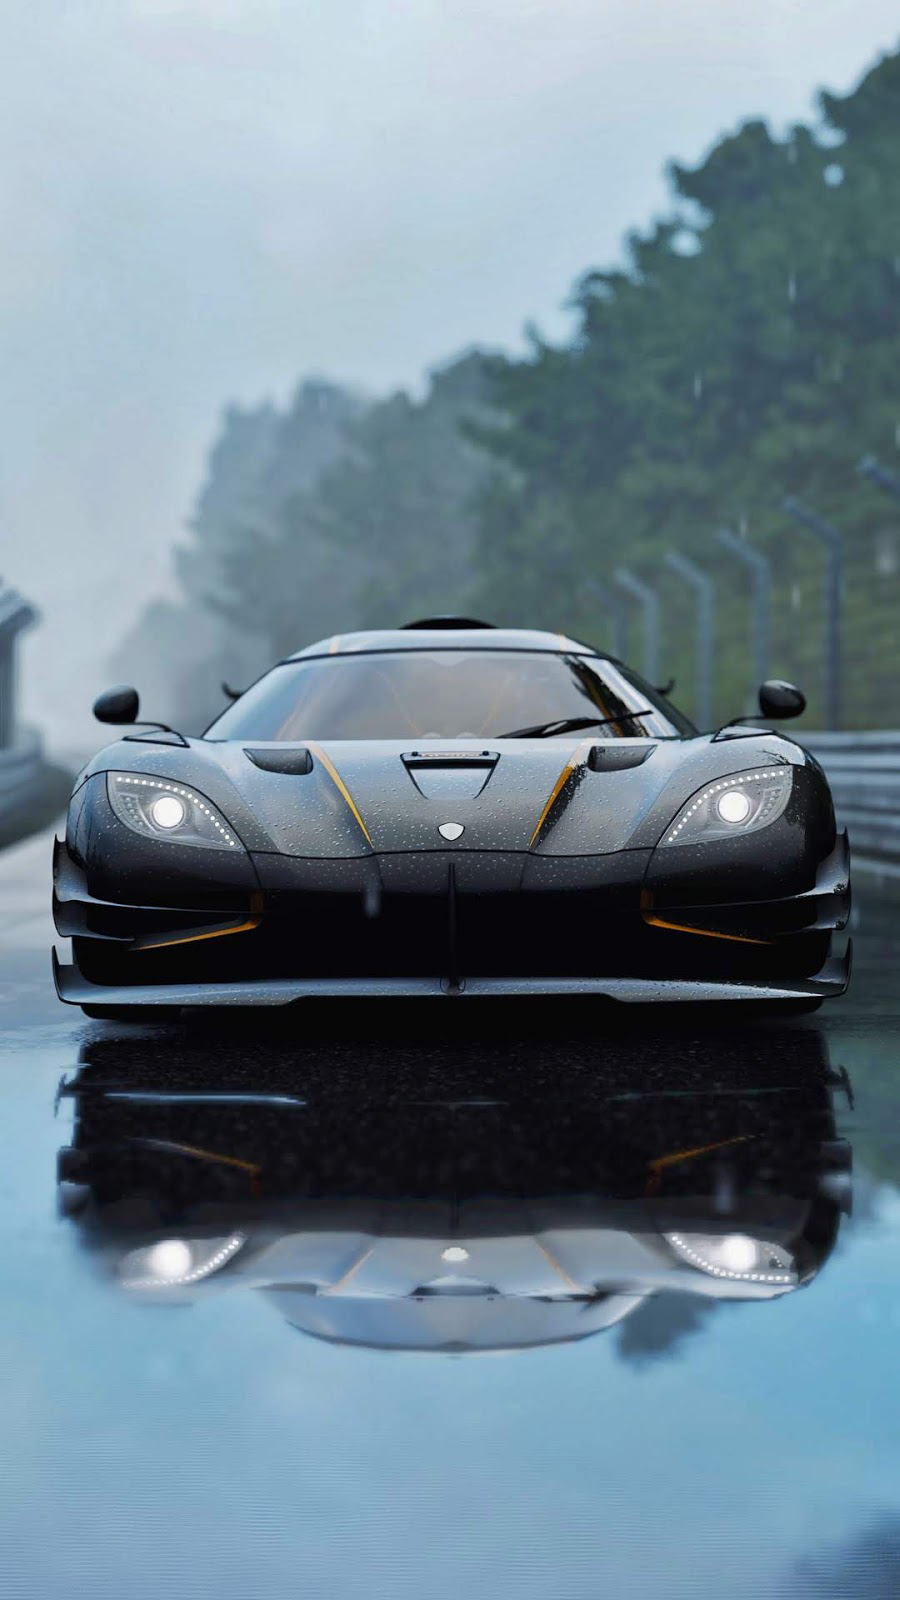 koenigsegg Super Car Wallpapers for Mobile Free Download – Best Wallpapers